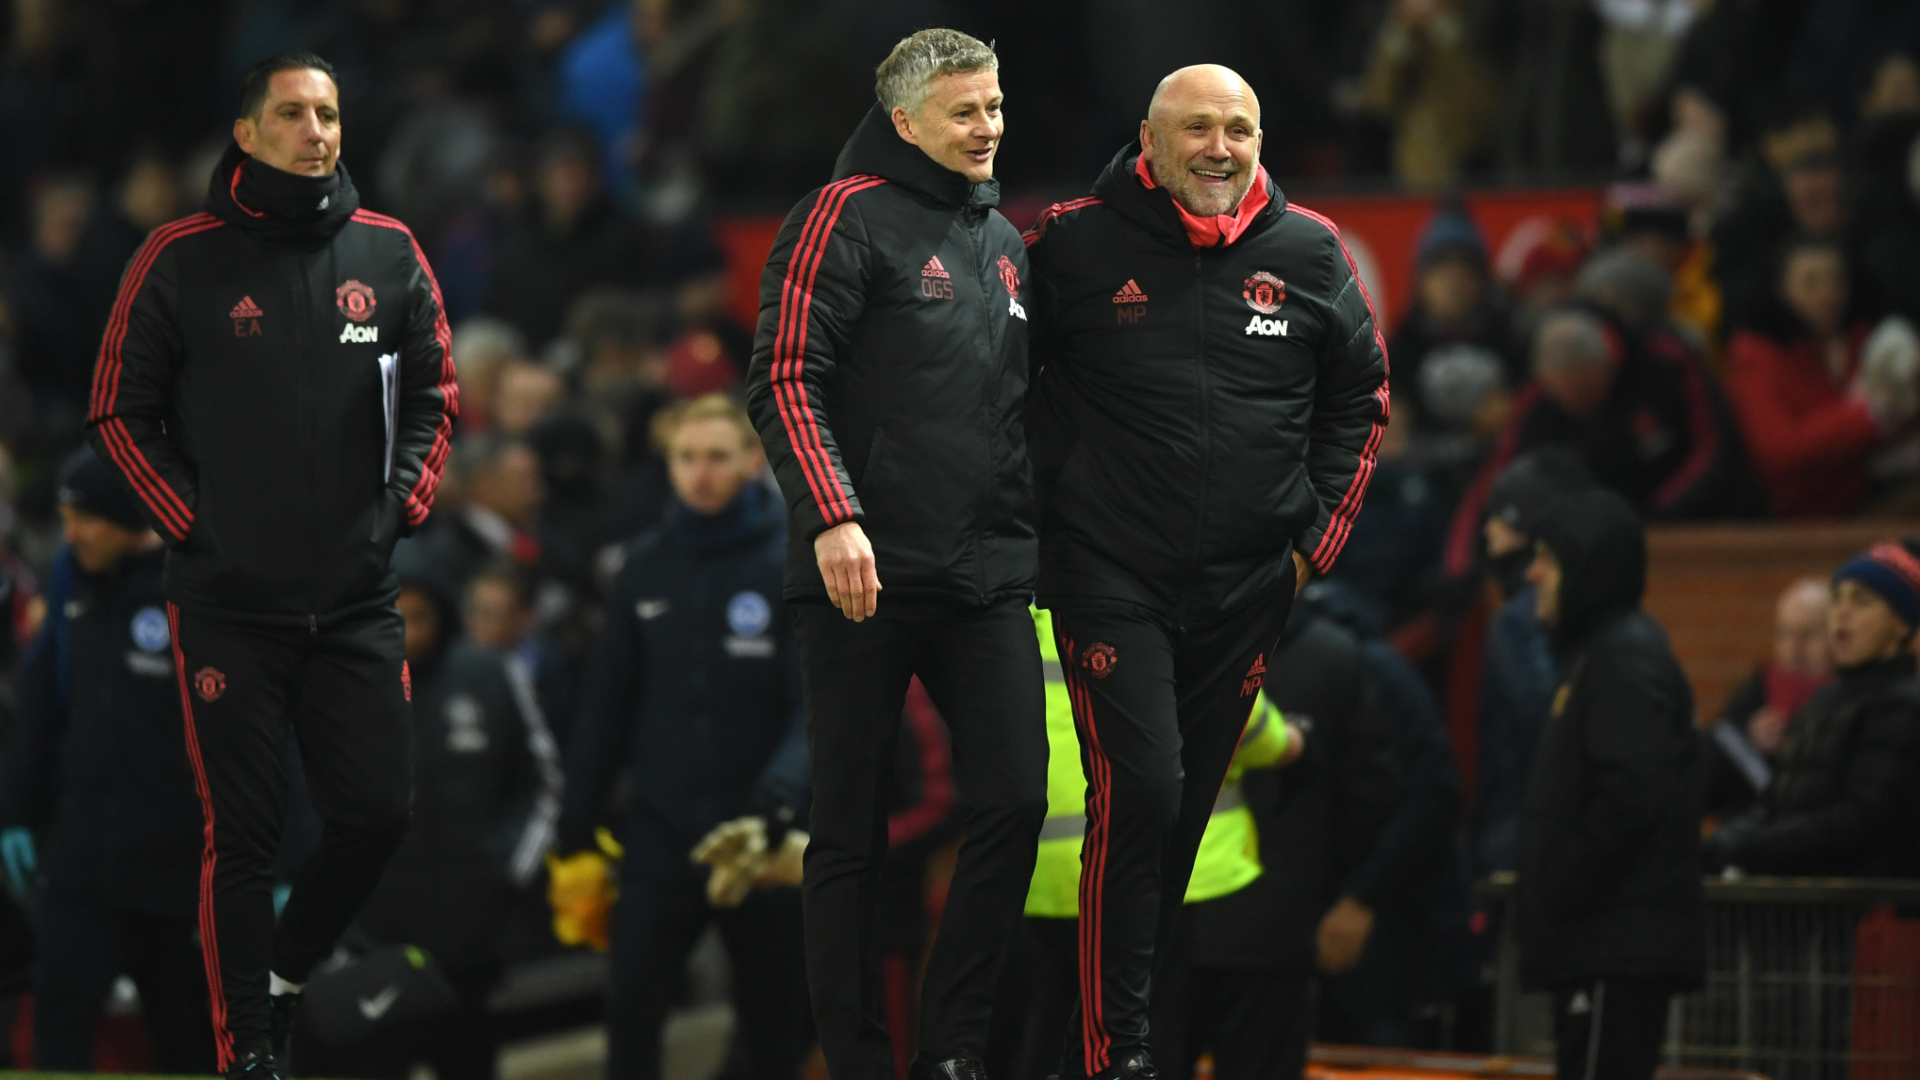 Manchester United chiefs pleased with Ole Gunnar Solskjaer's defensive work